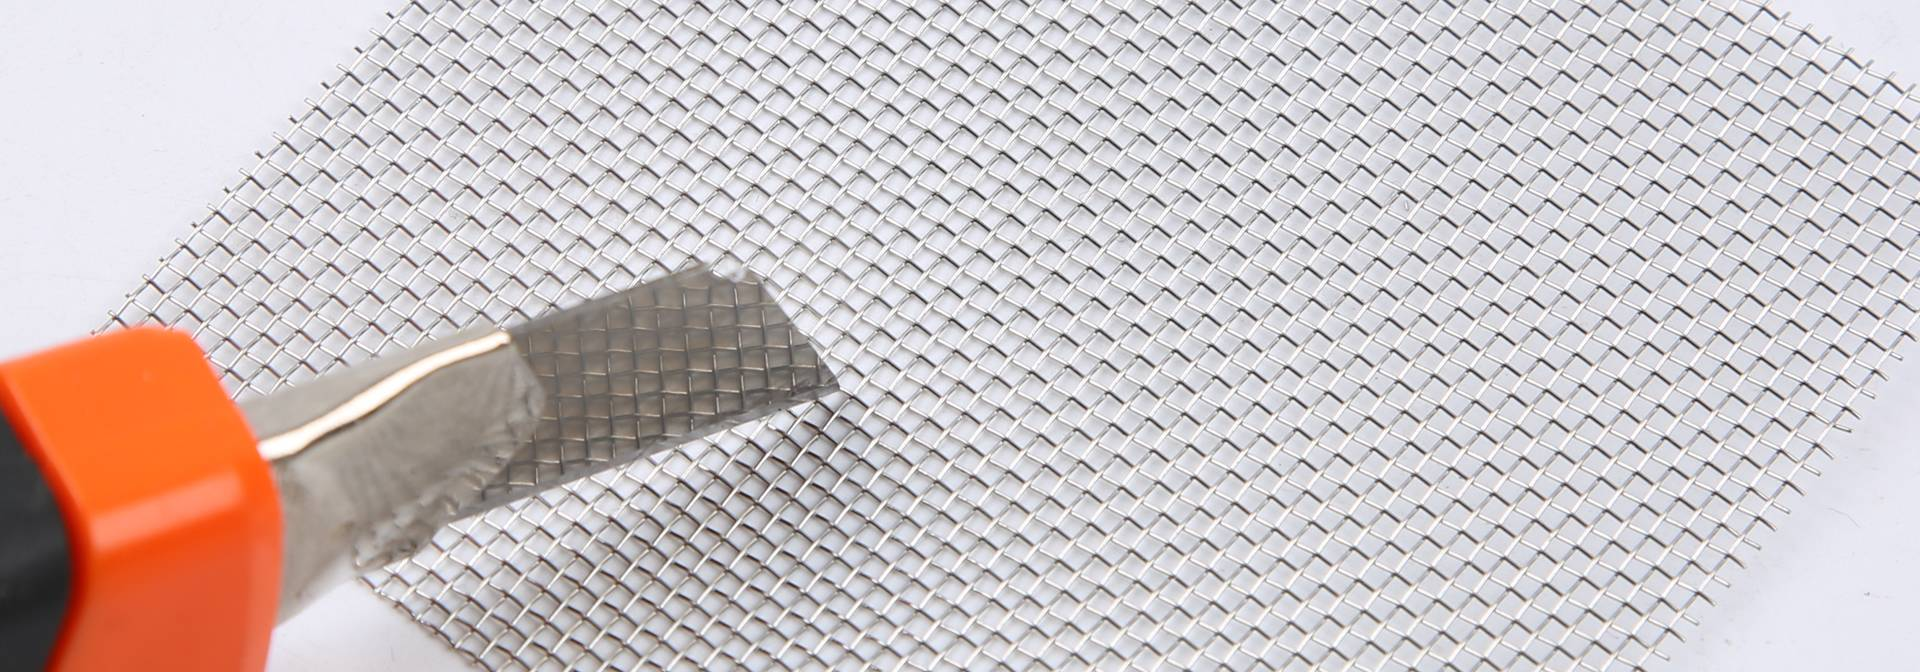 A knife on a sheet of stainless steel window screen mesh.